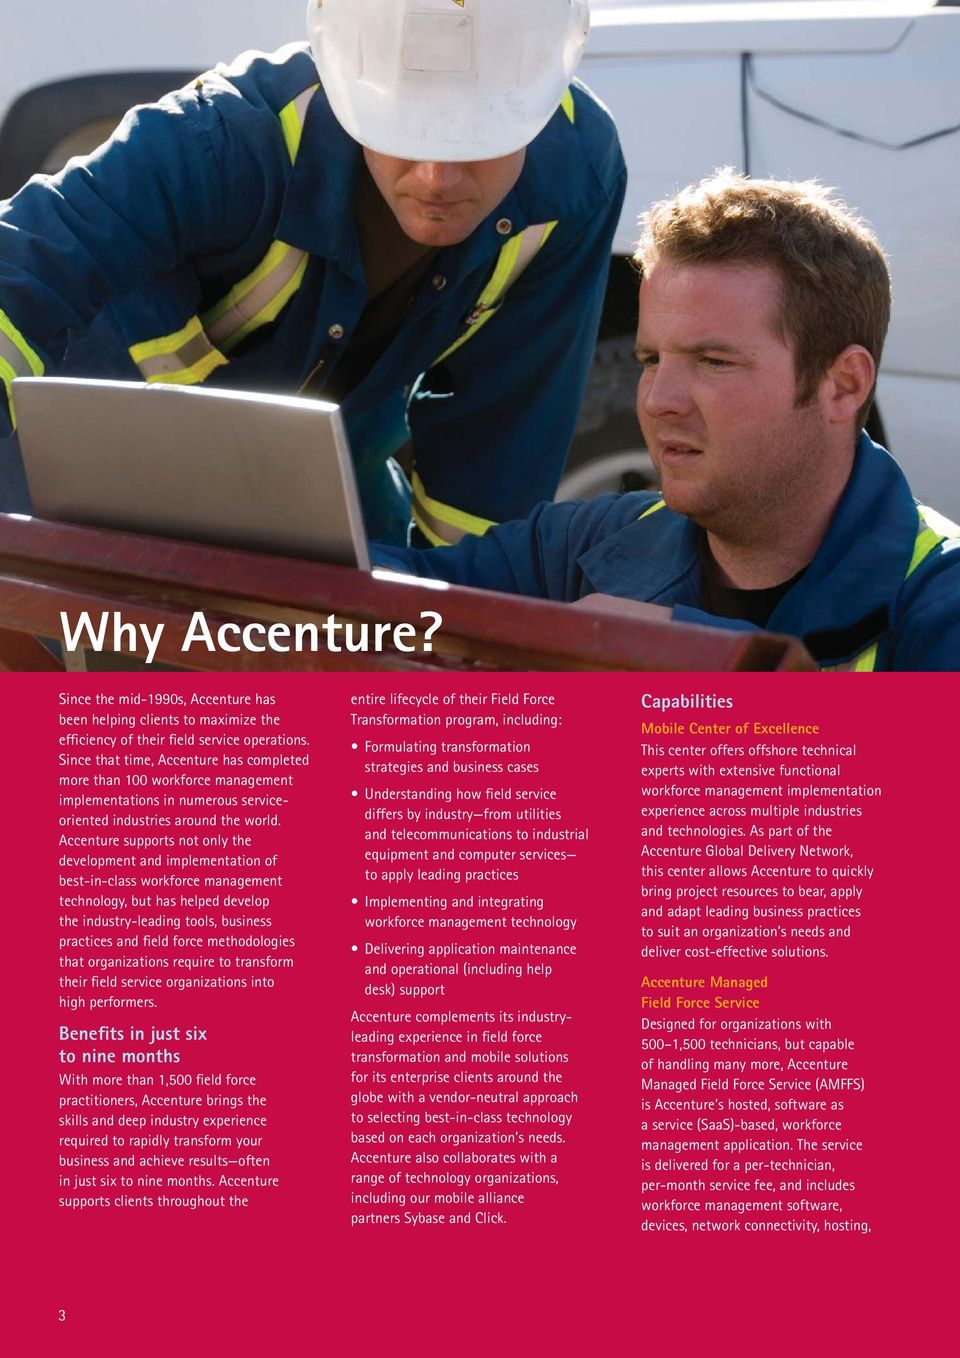 Accenture supports not only the development and implementation of best-in-class workforce management technology, but has helped develop the industry-leading tools, business practices and field force